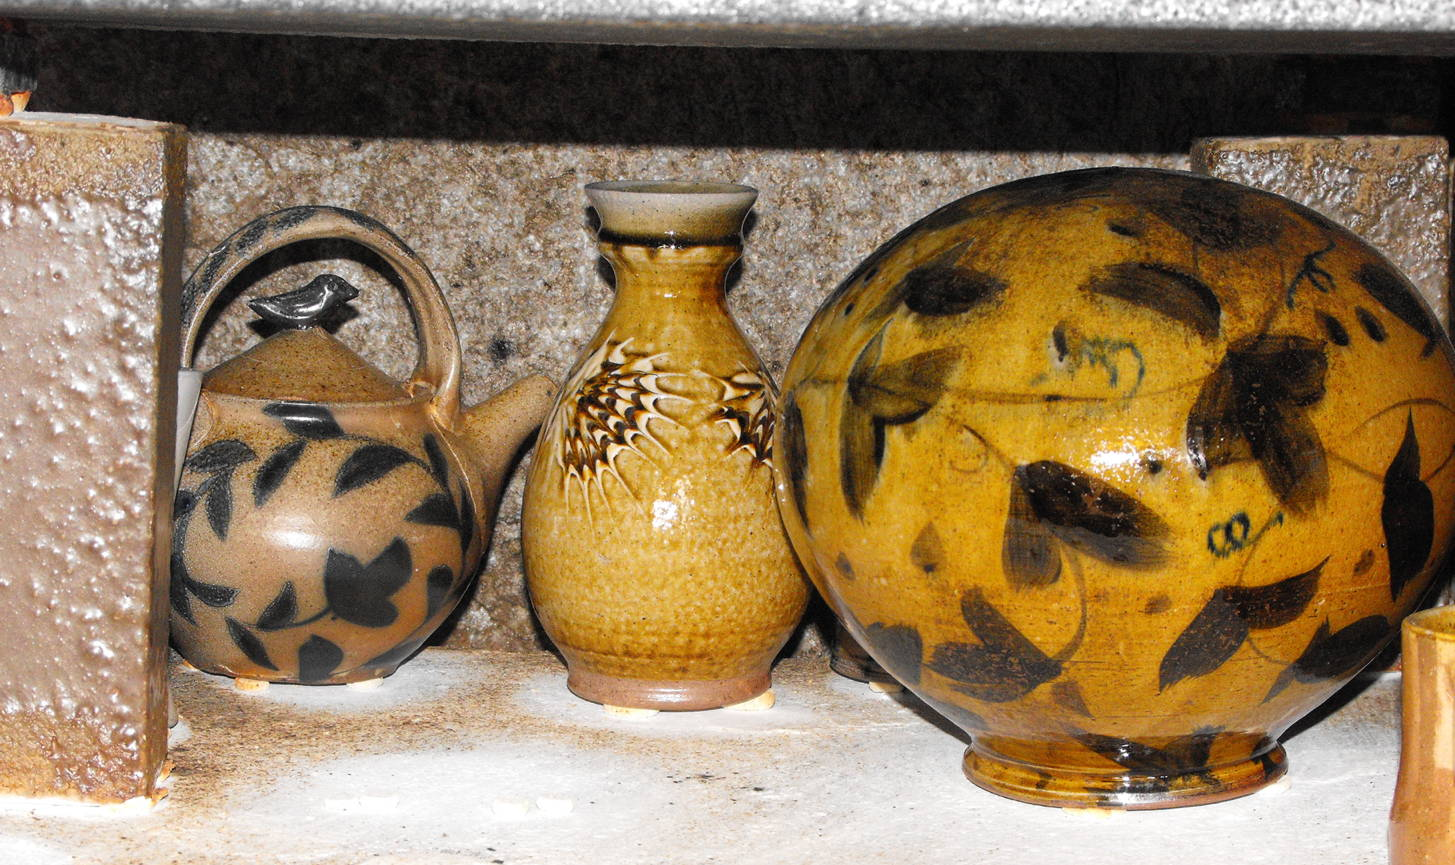 wood kiln results showing spherical pots alex Matisse and teapot